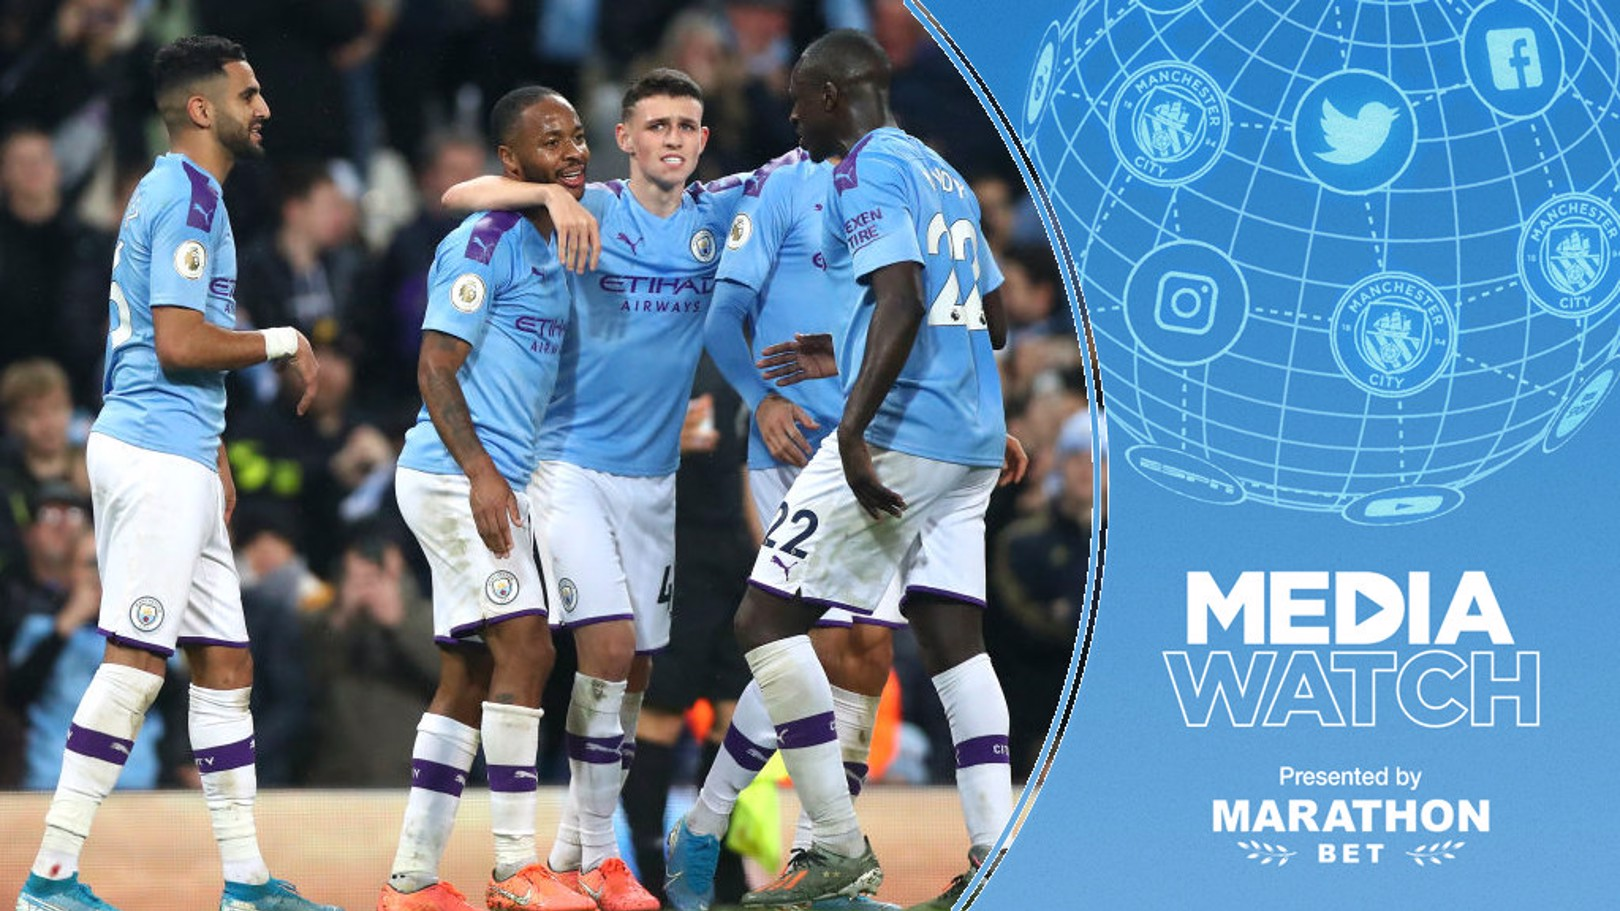 MEDIA WATCH: The latest City headlines.